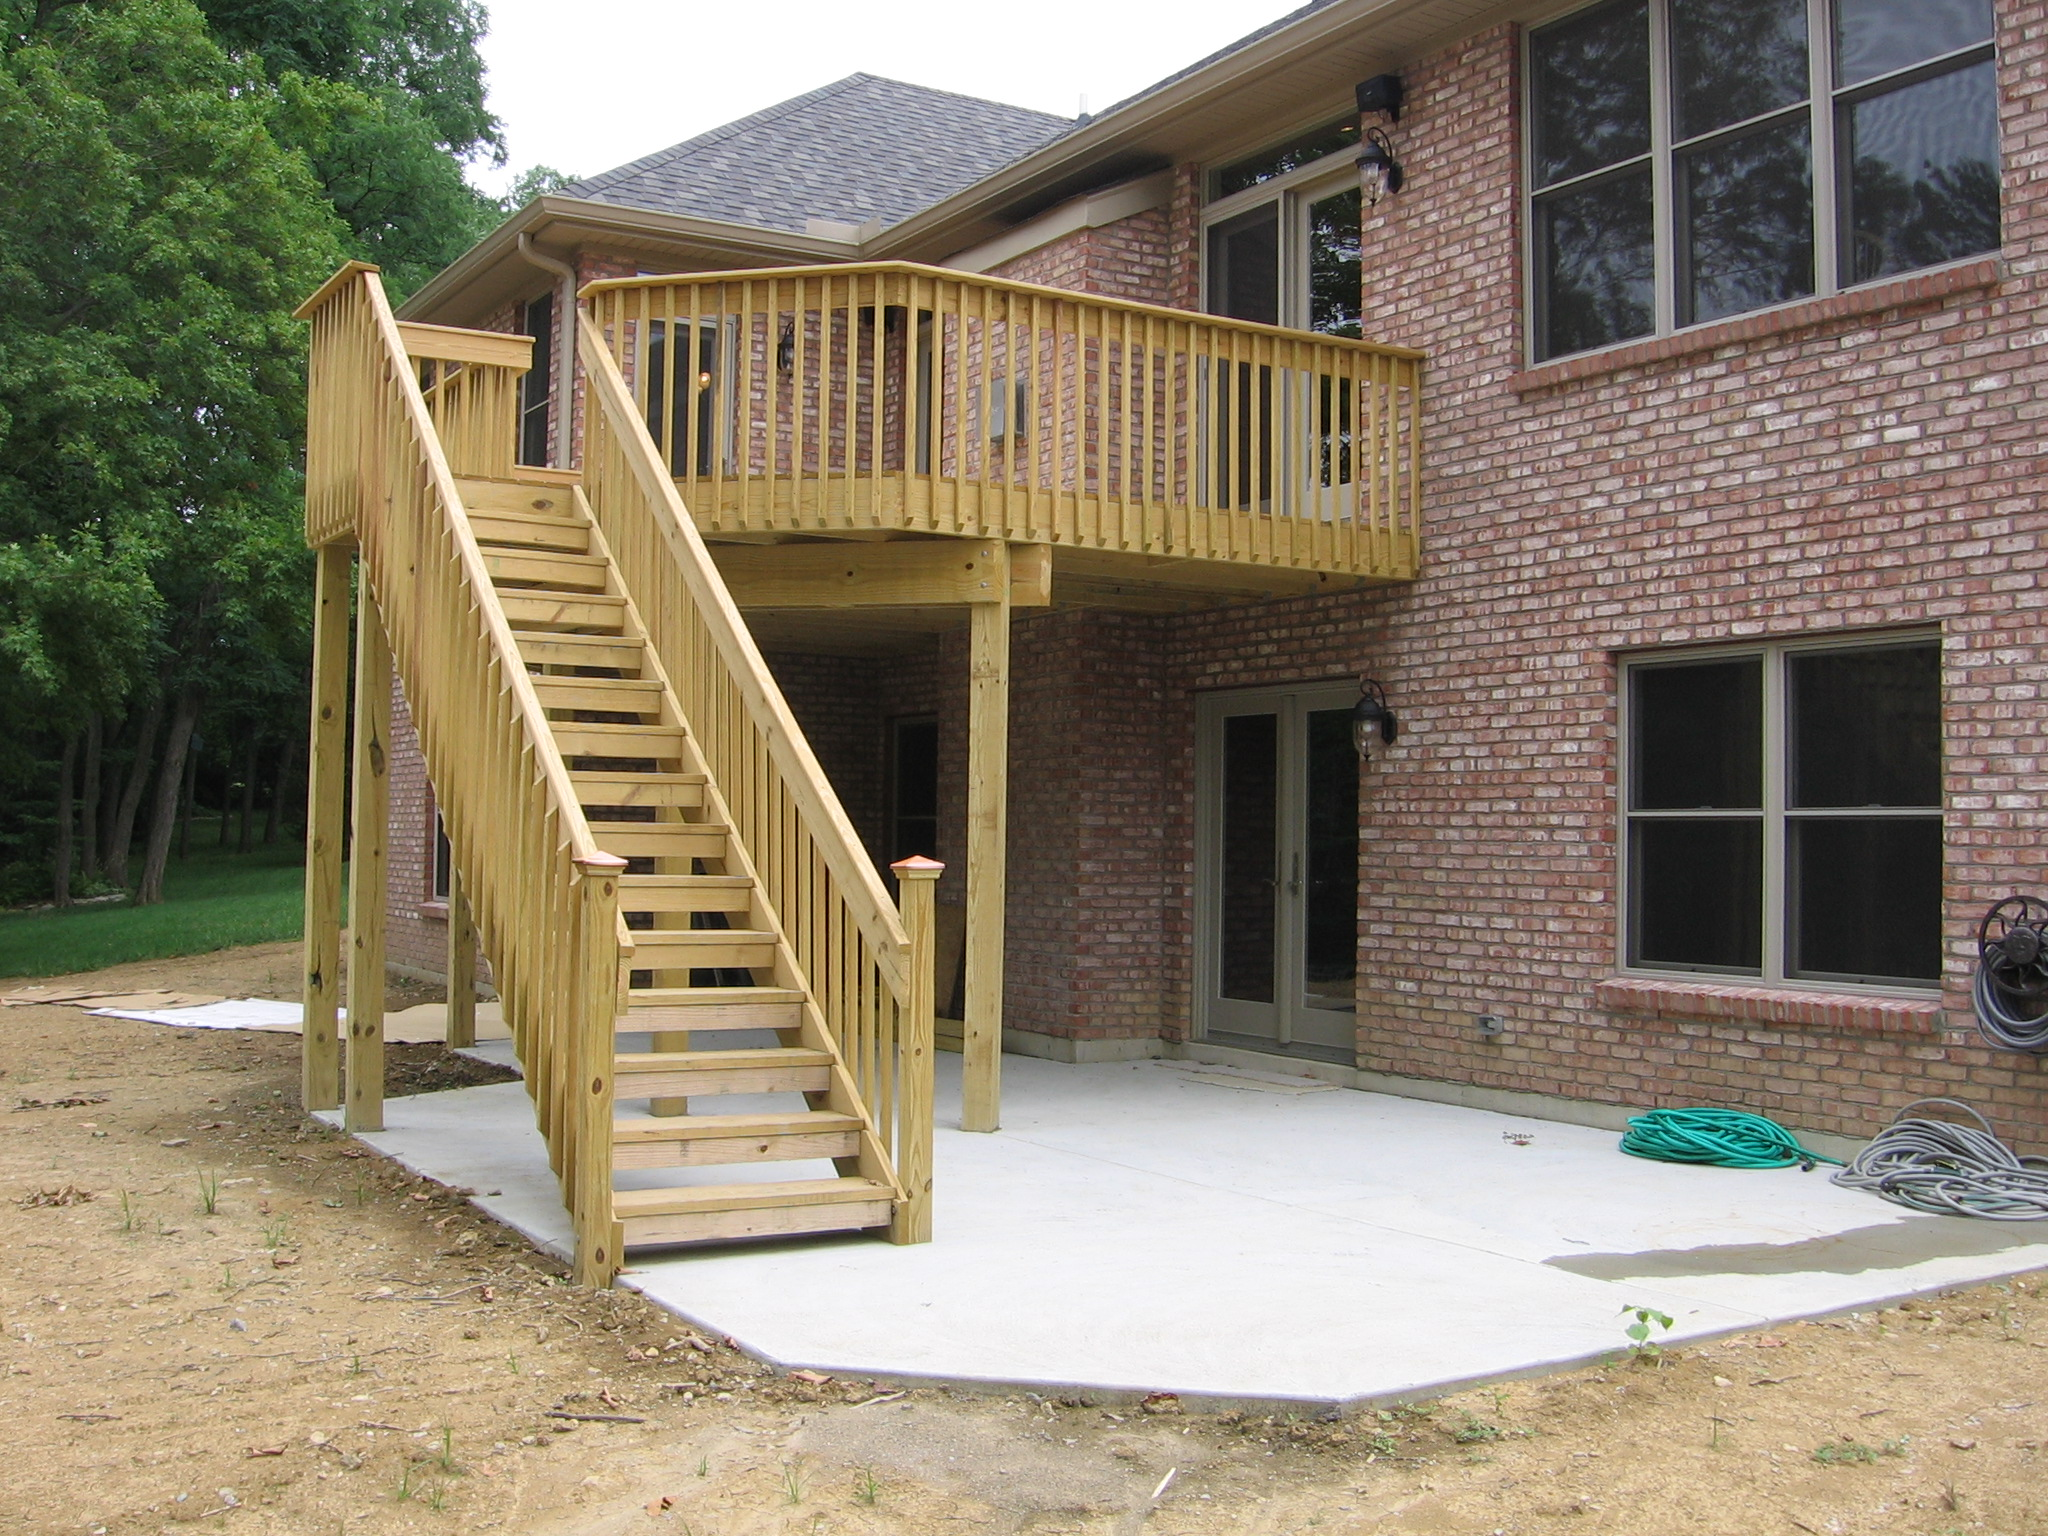 Woodworking Plan: plans to build wood patio furniture on Patio Structure Designs id=60136